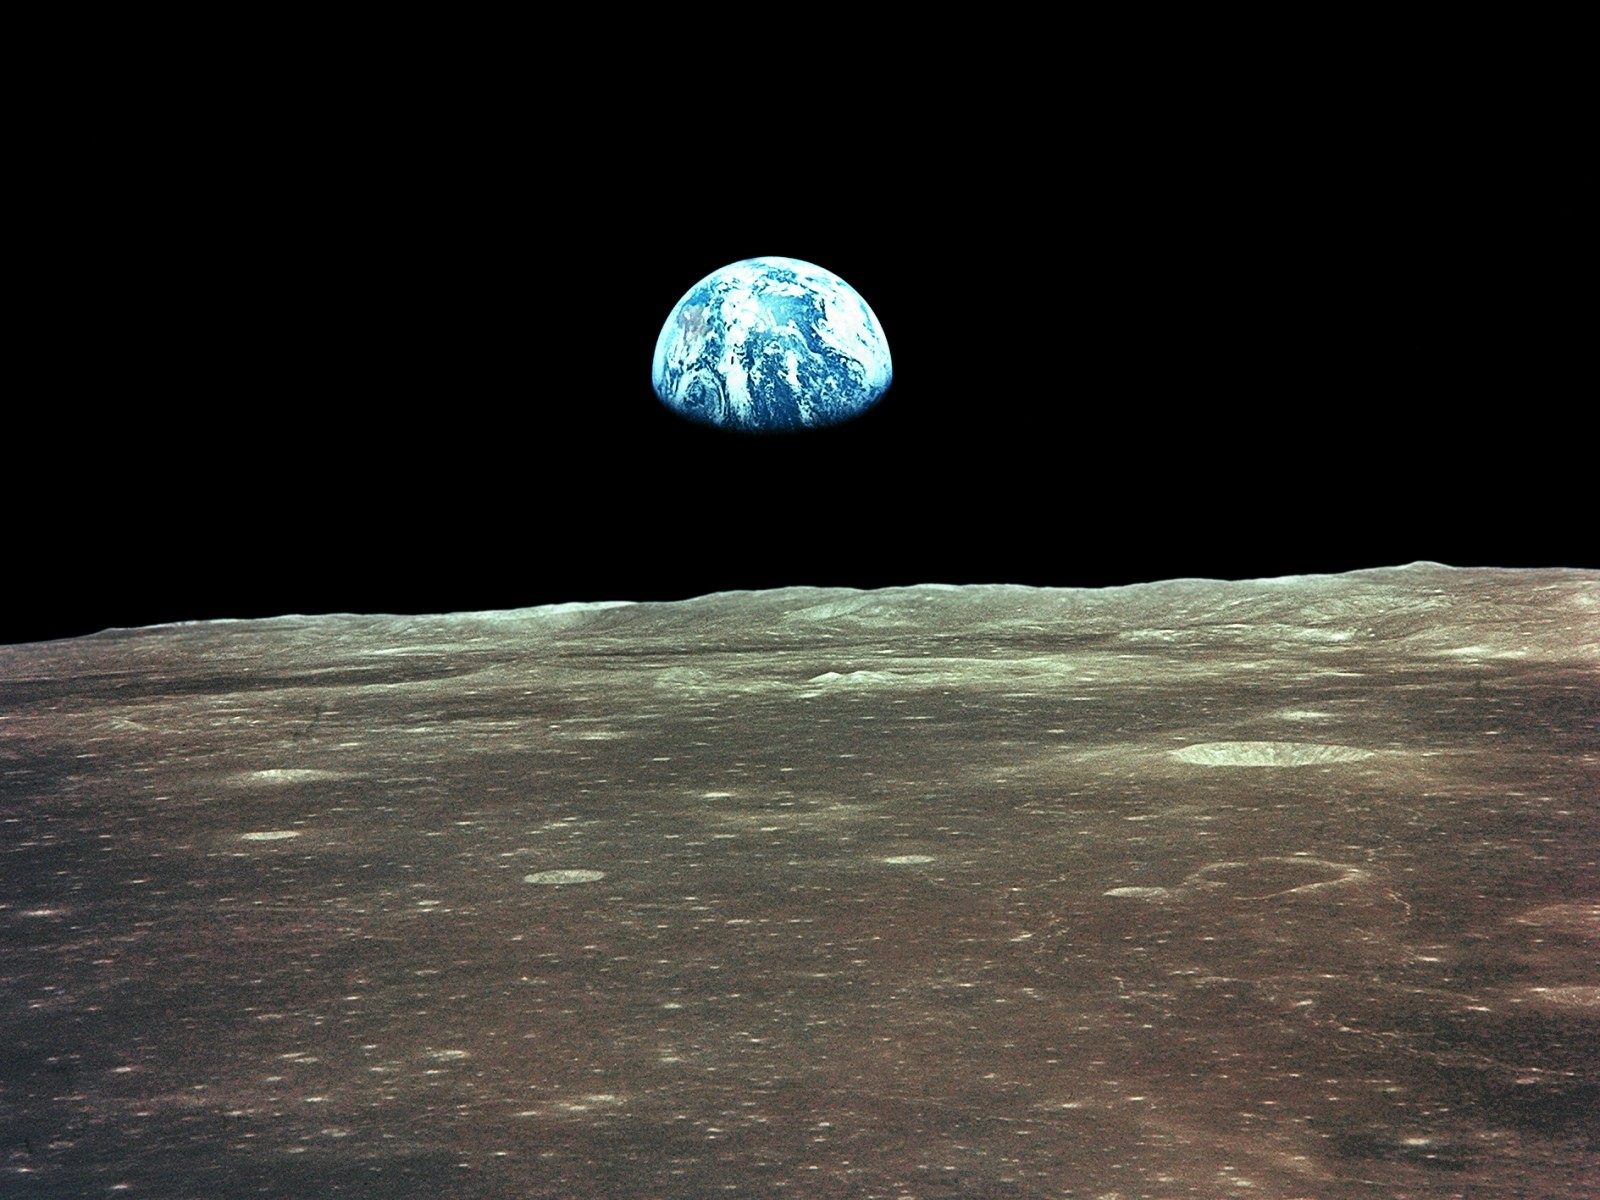 """Earthrise"" yep, took that pic myself, of course... yes there's no question..."